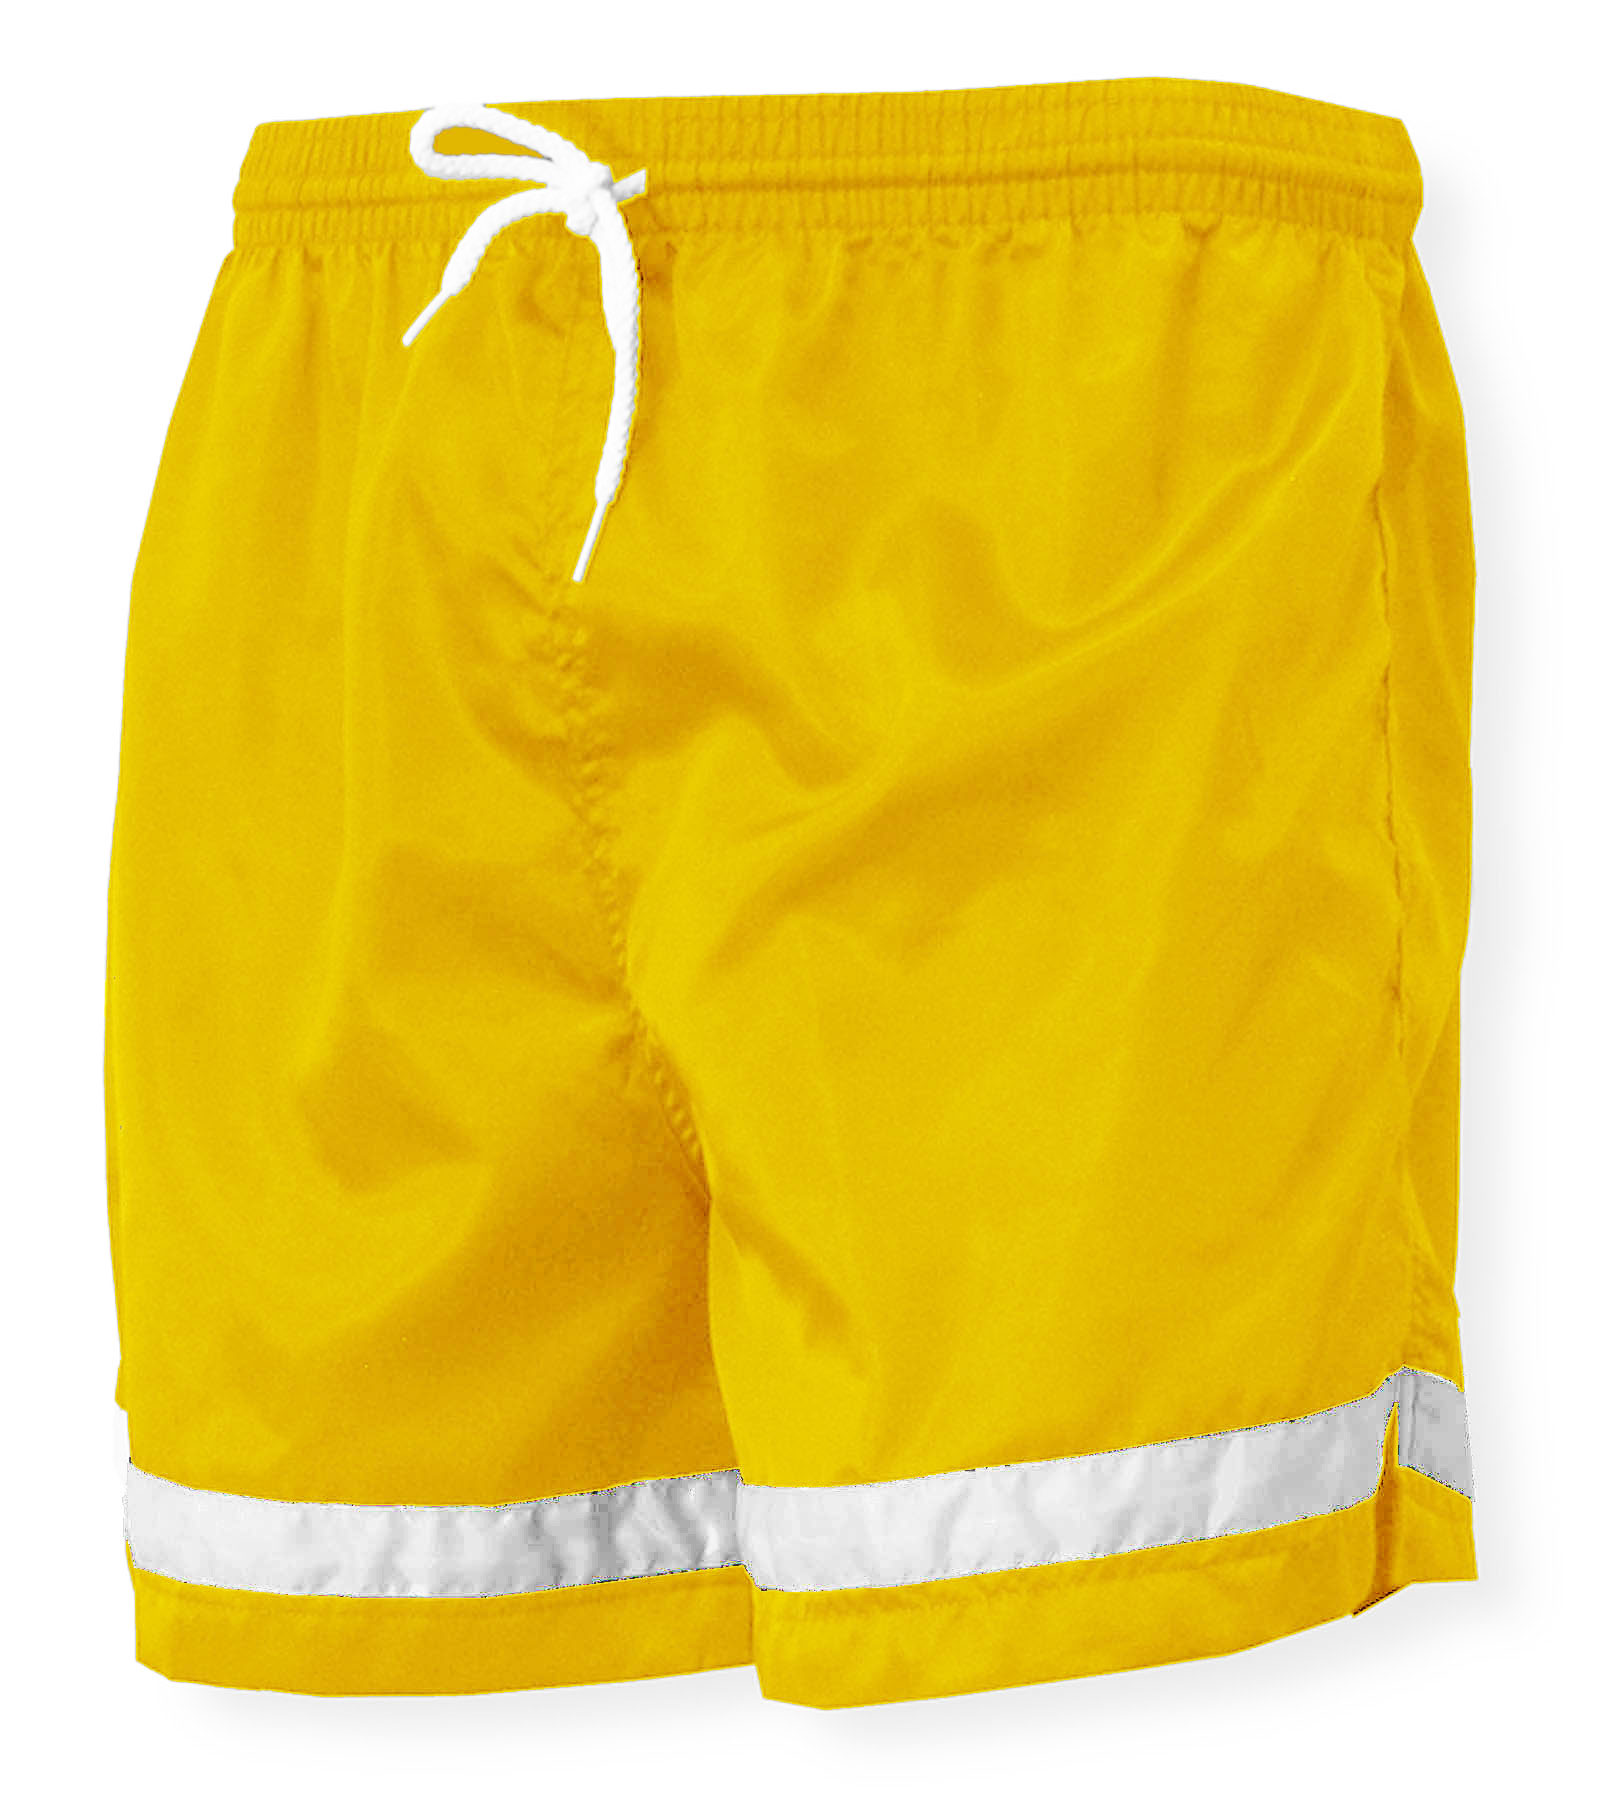 Vashon soccer shorts in gold/white by Code Four Athletics